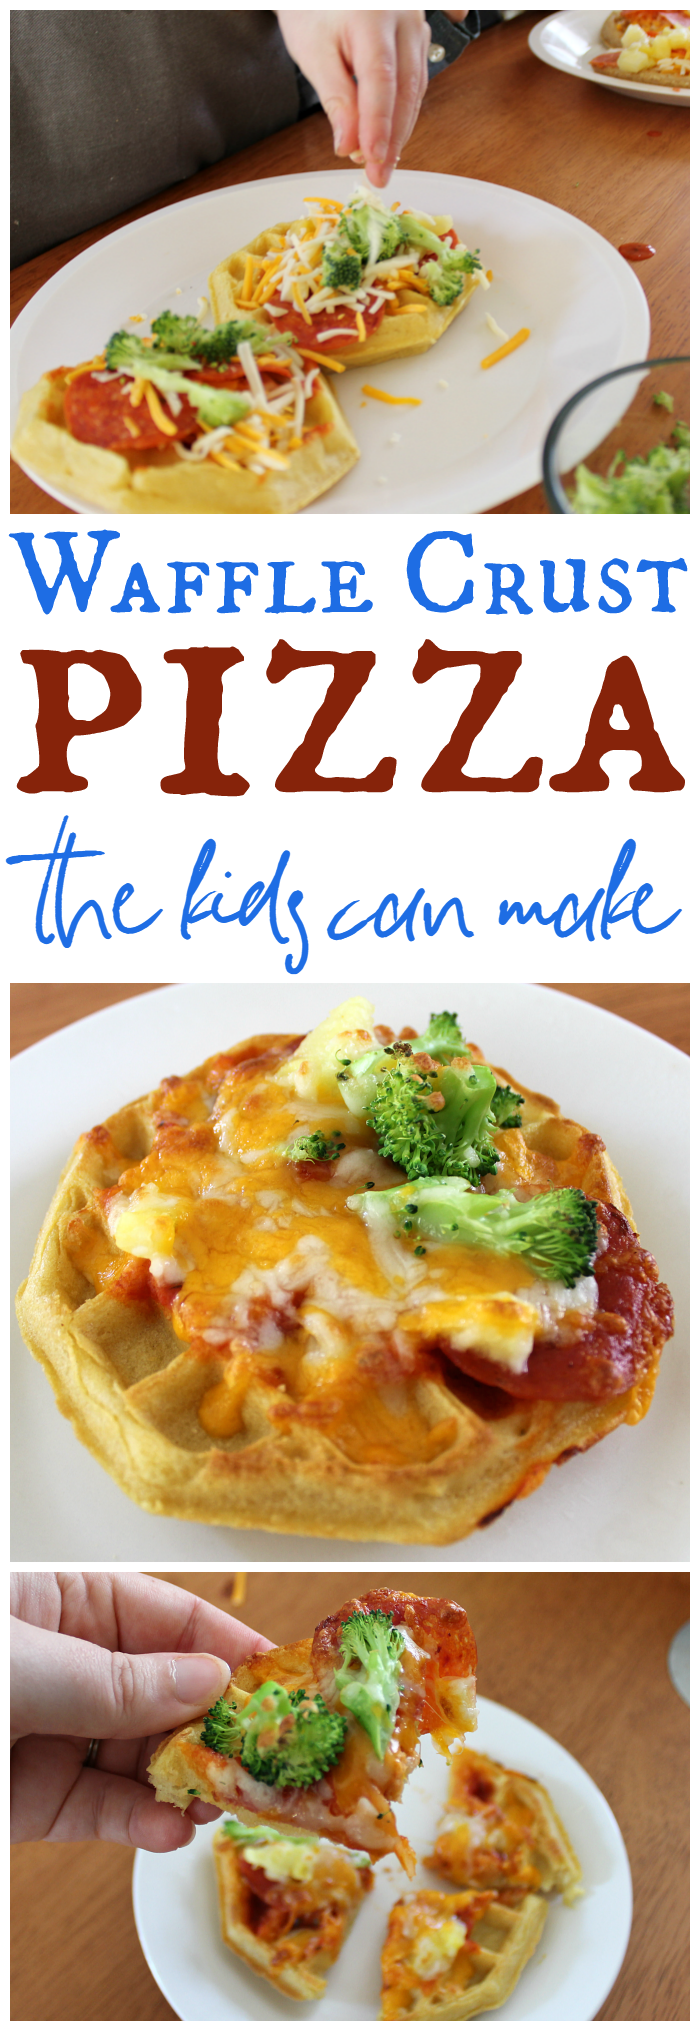 The kids can almost make these Waffle Crust Pizzas entirely on their own! Yum! Perfect for a quick lunch or after school snack.